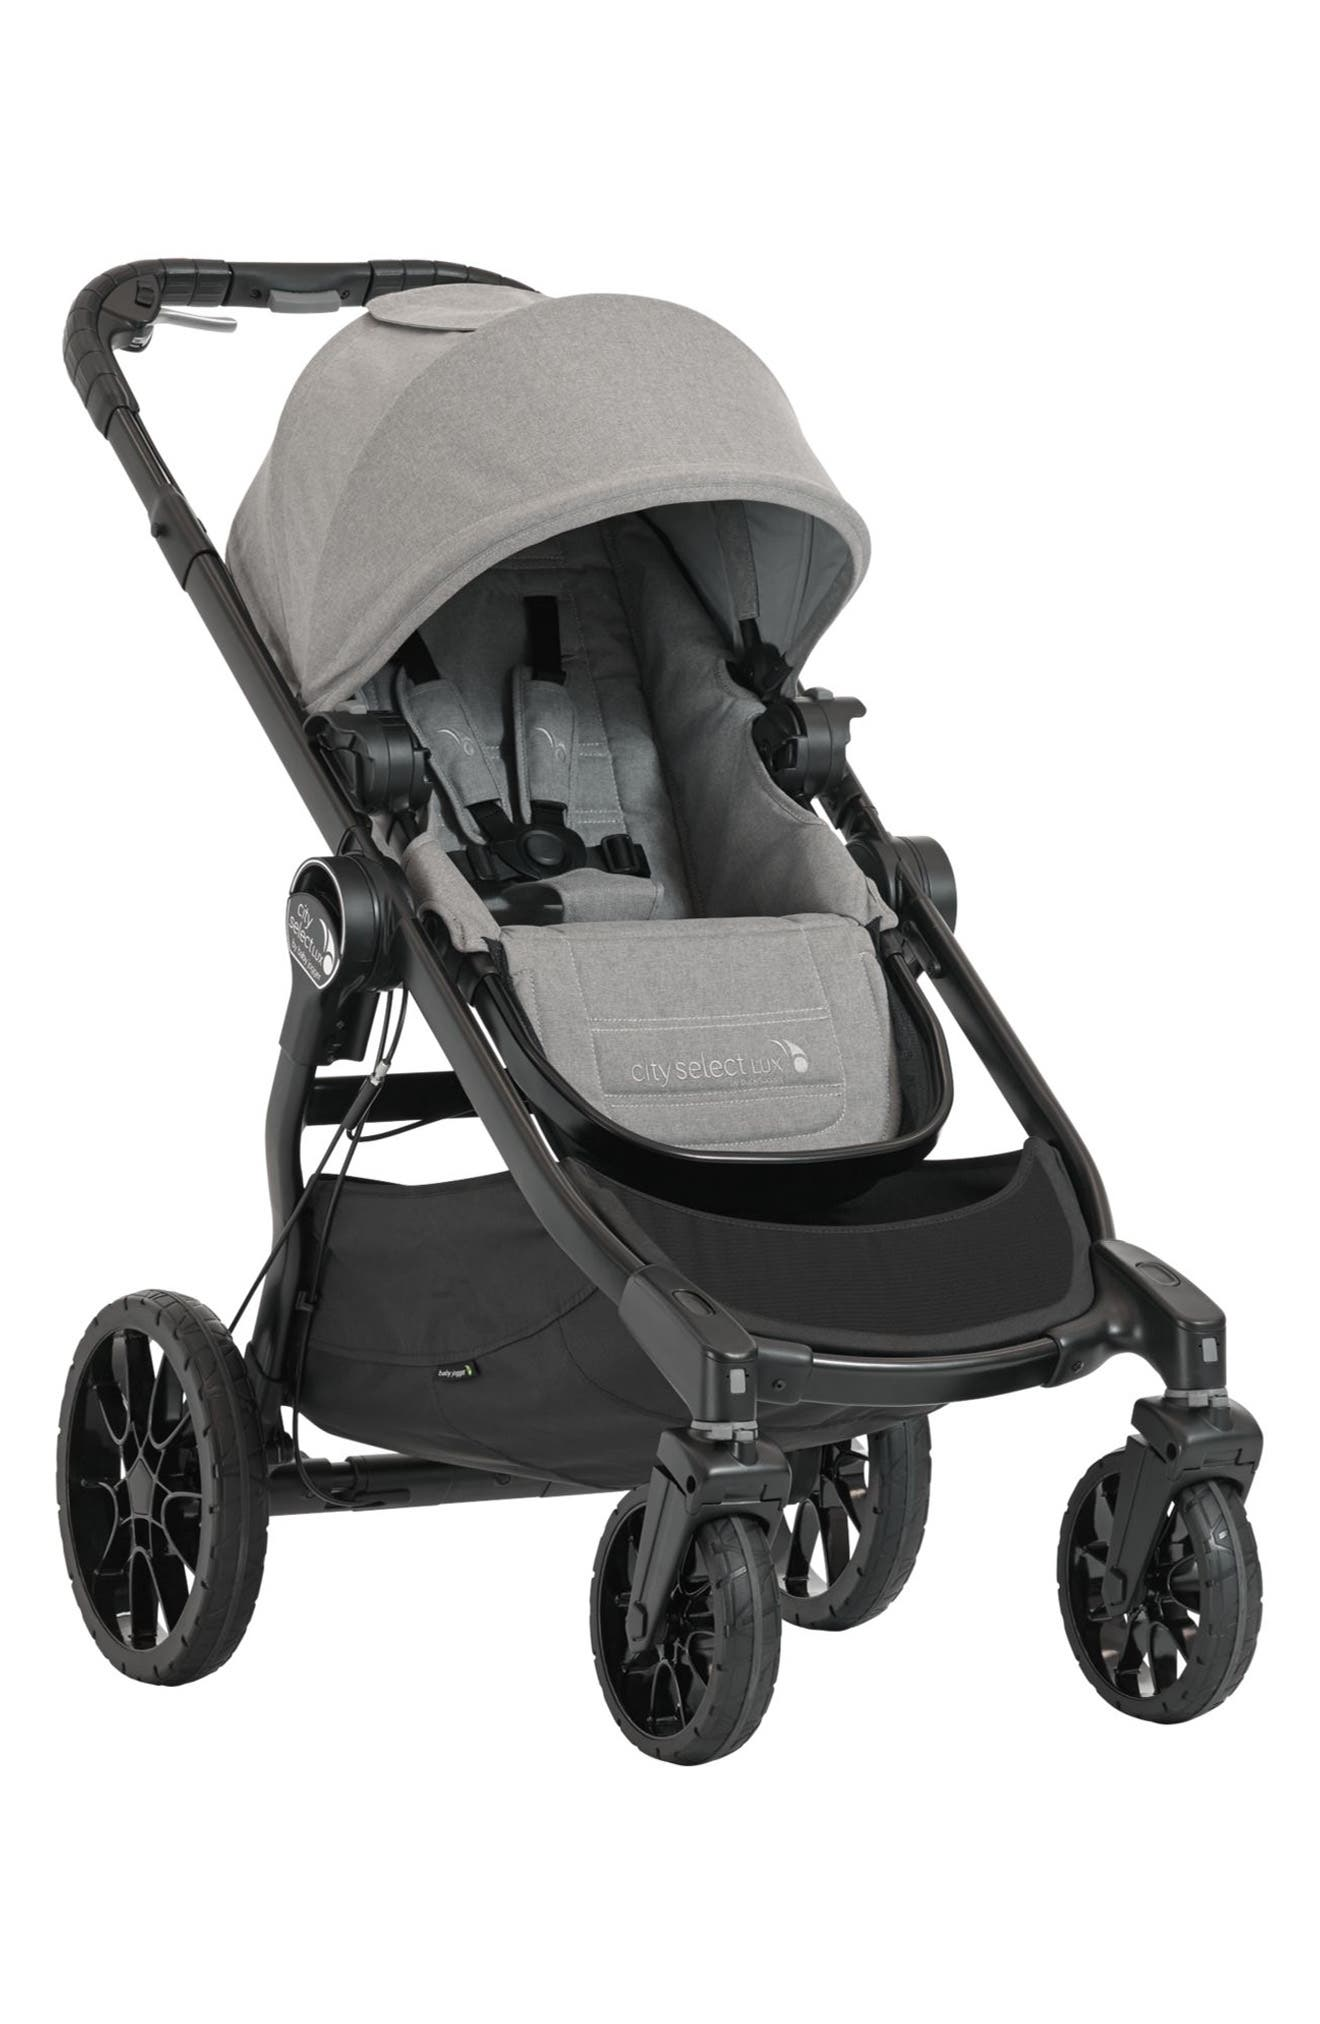 Baby Jogger City Select LUX 2017 Stroller